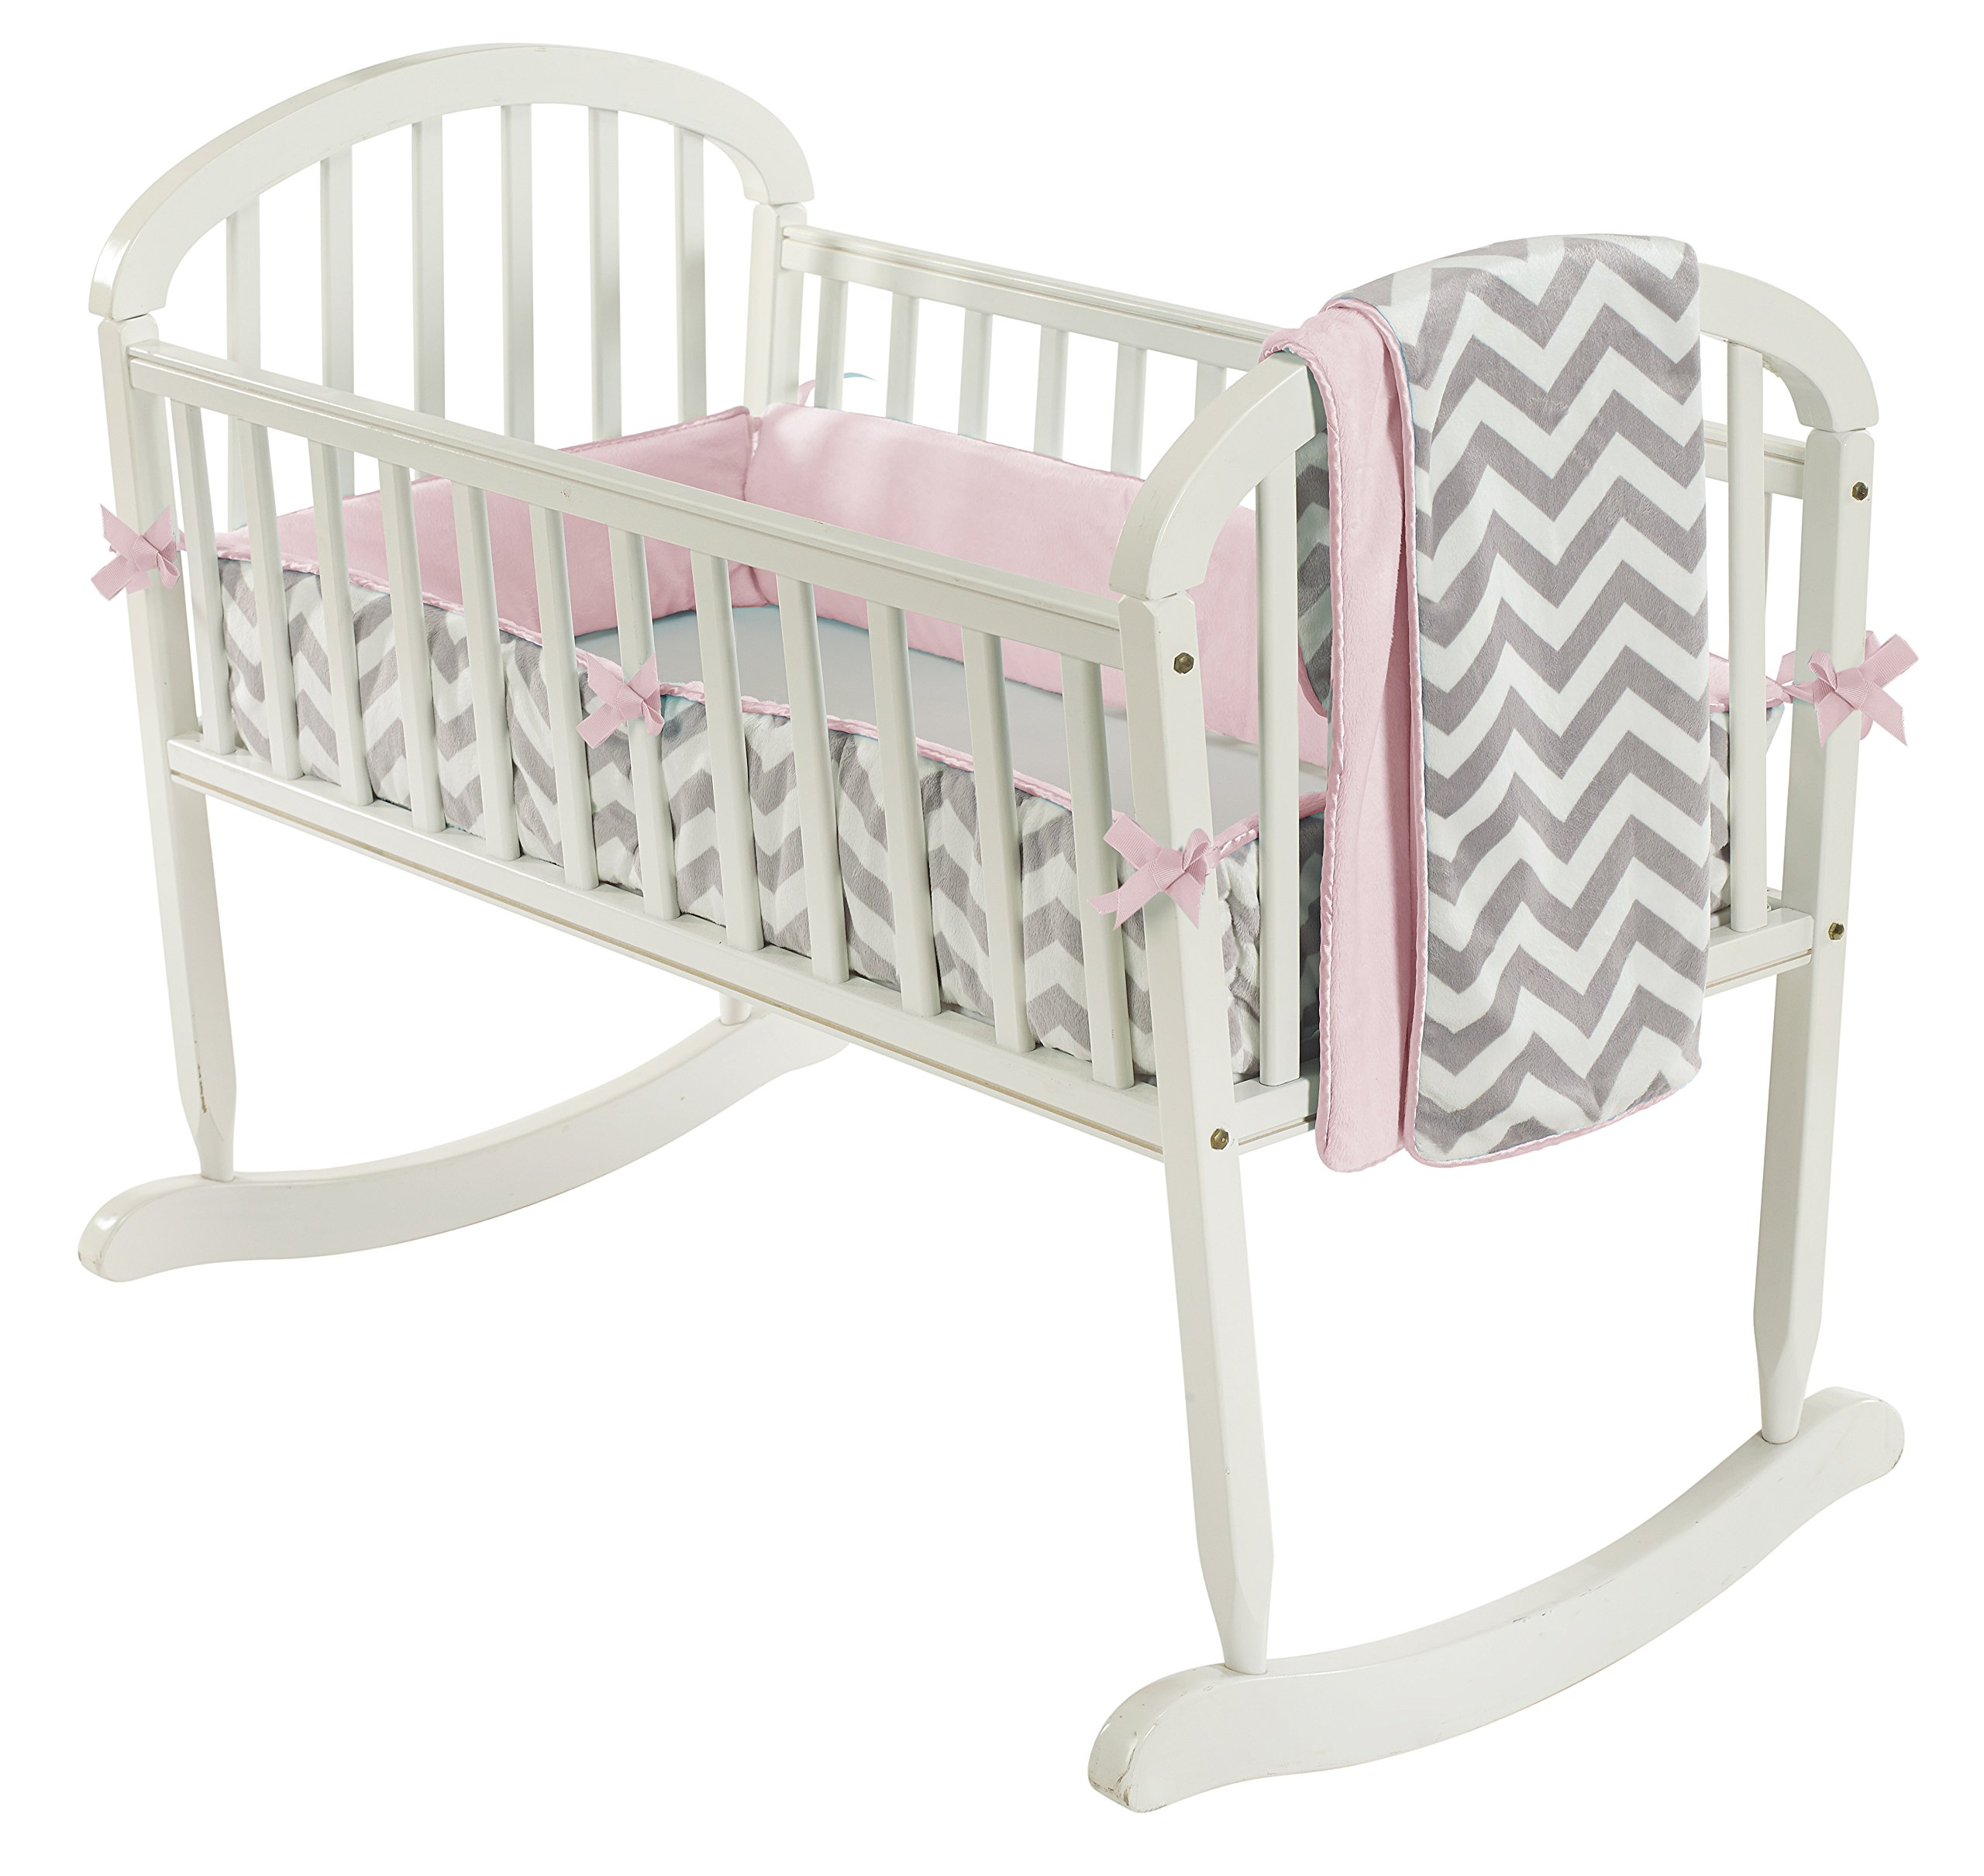 Baby Doll Bedding Minky Chevron Cradle Bedding Set, Pink